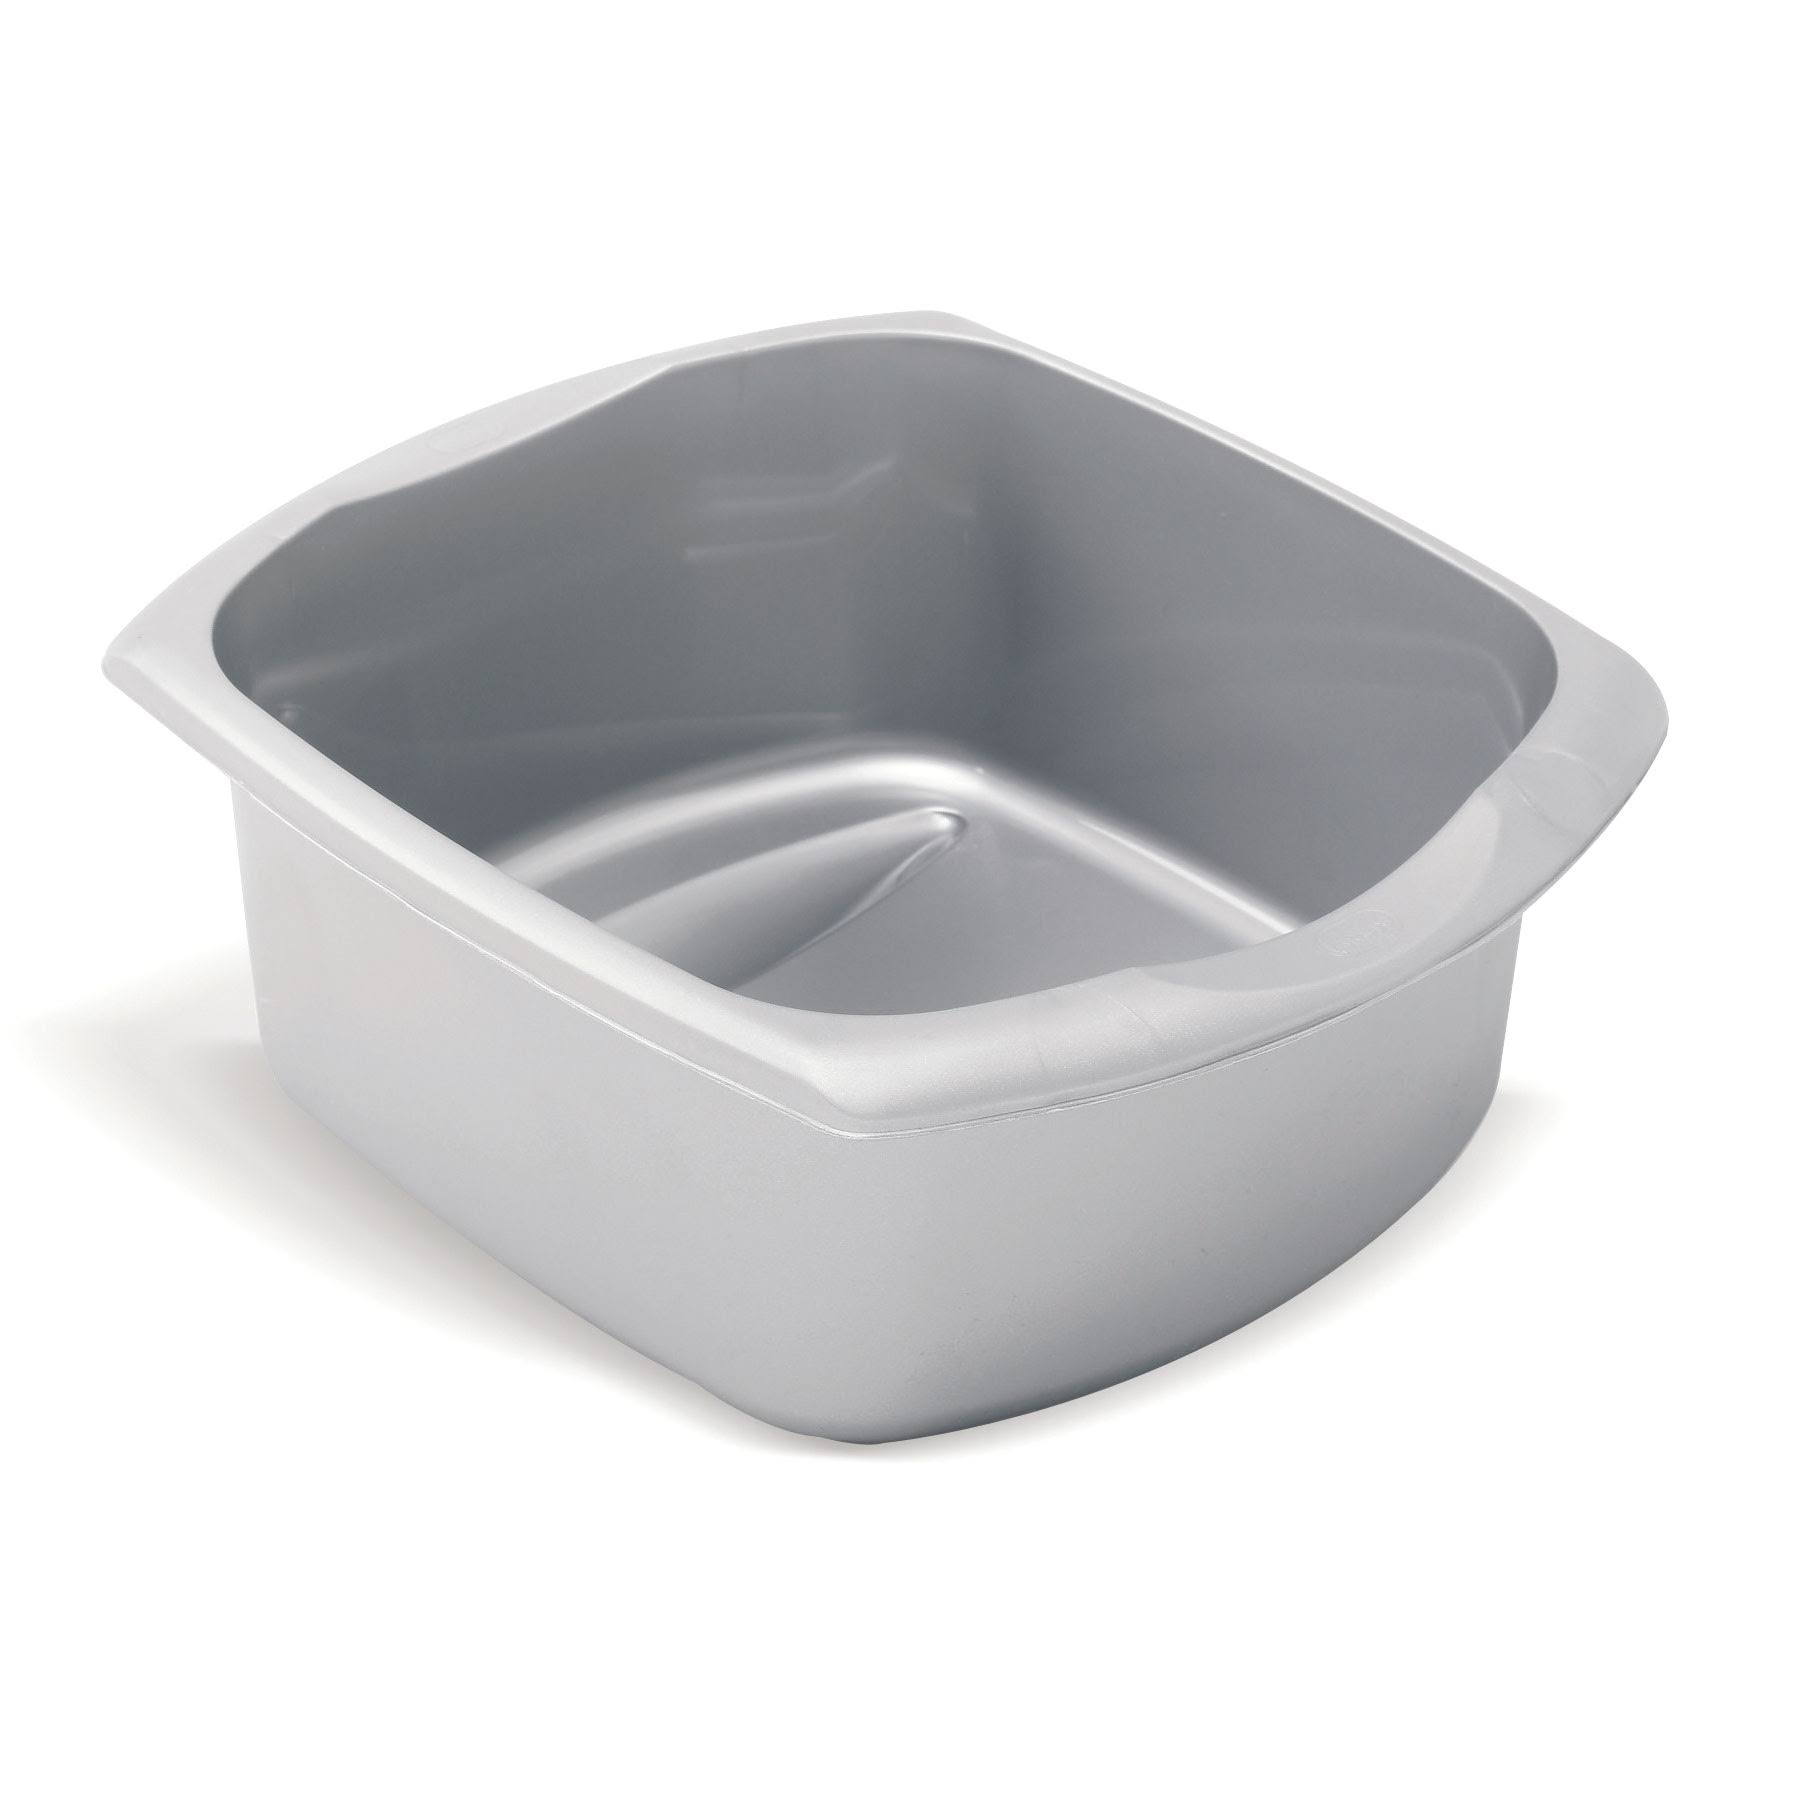 Addis Rectangular Metallic Bowl - Grey, 9.5l